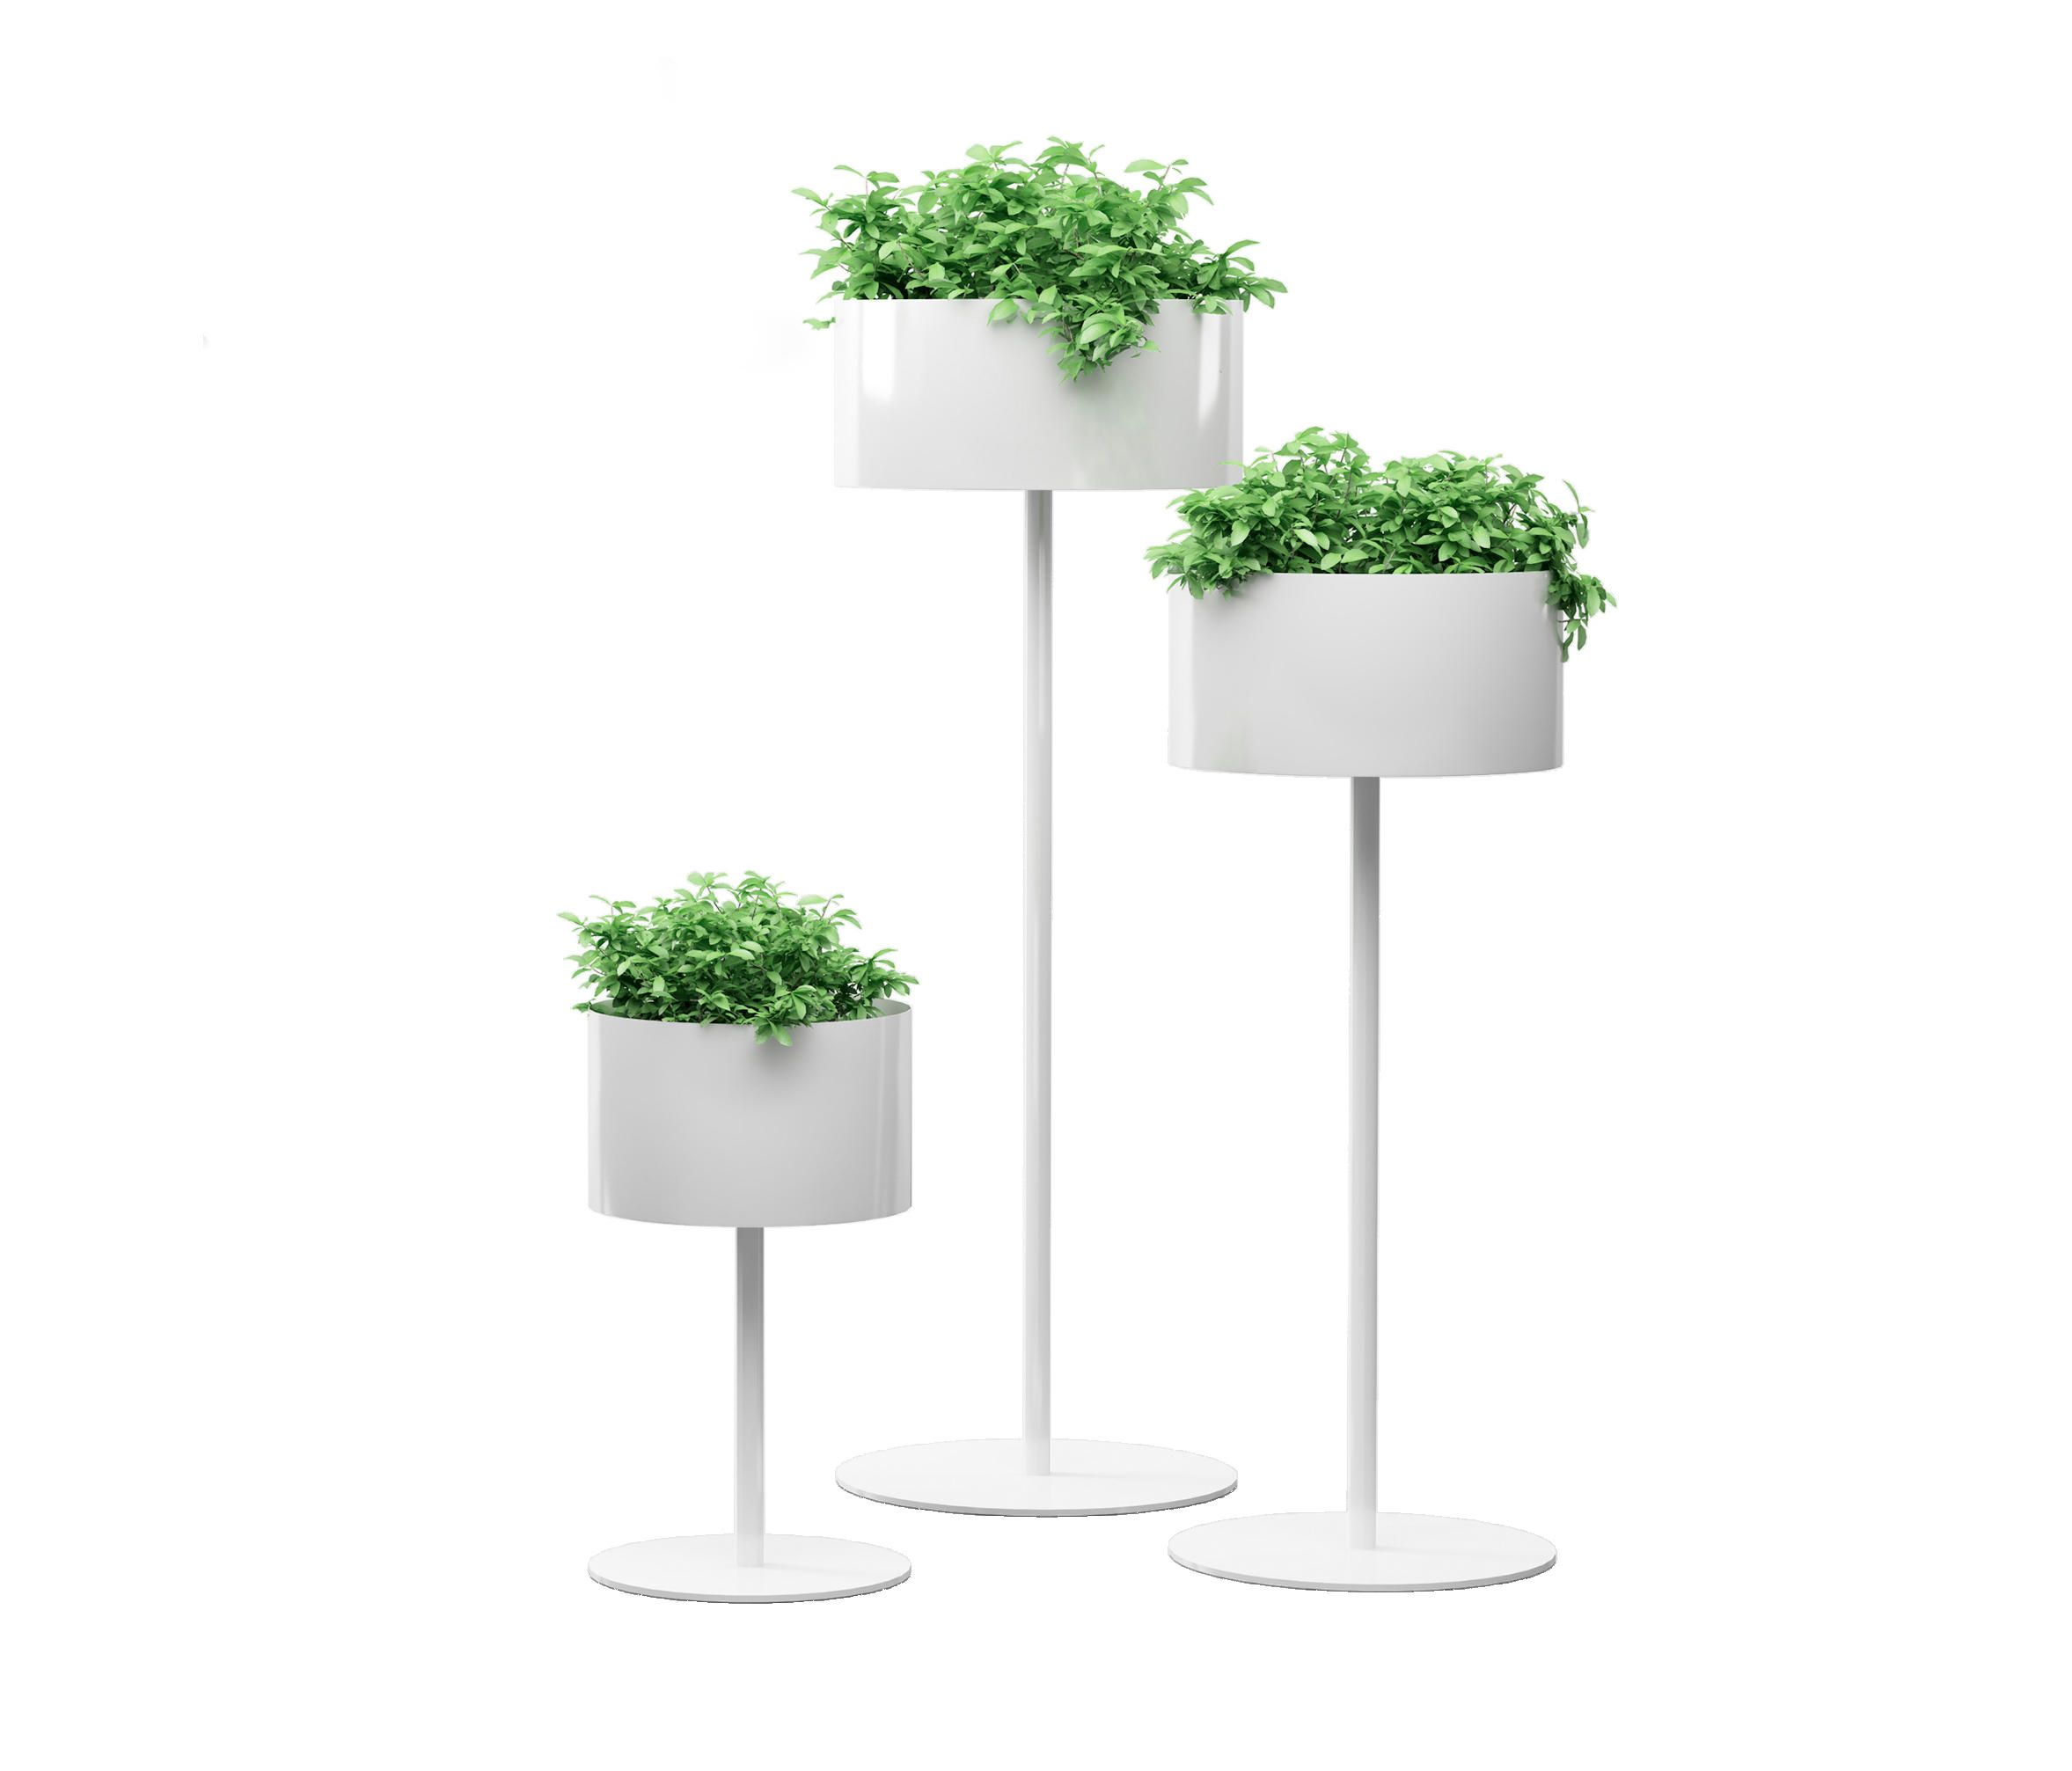 Green cloud standing by systemtronic plant holders plant stands